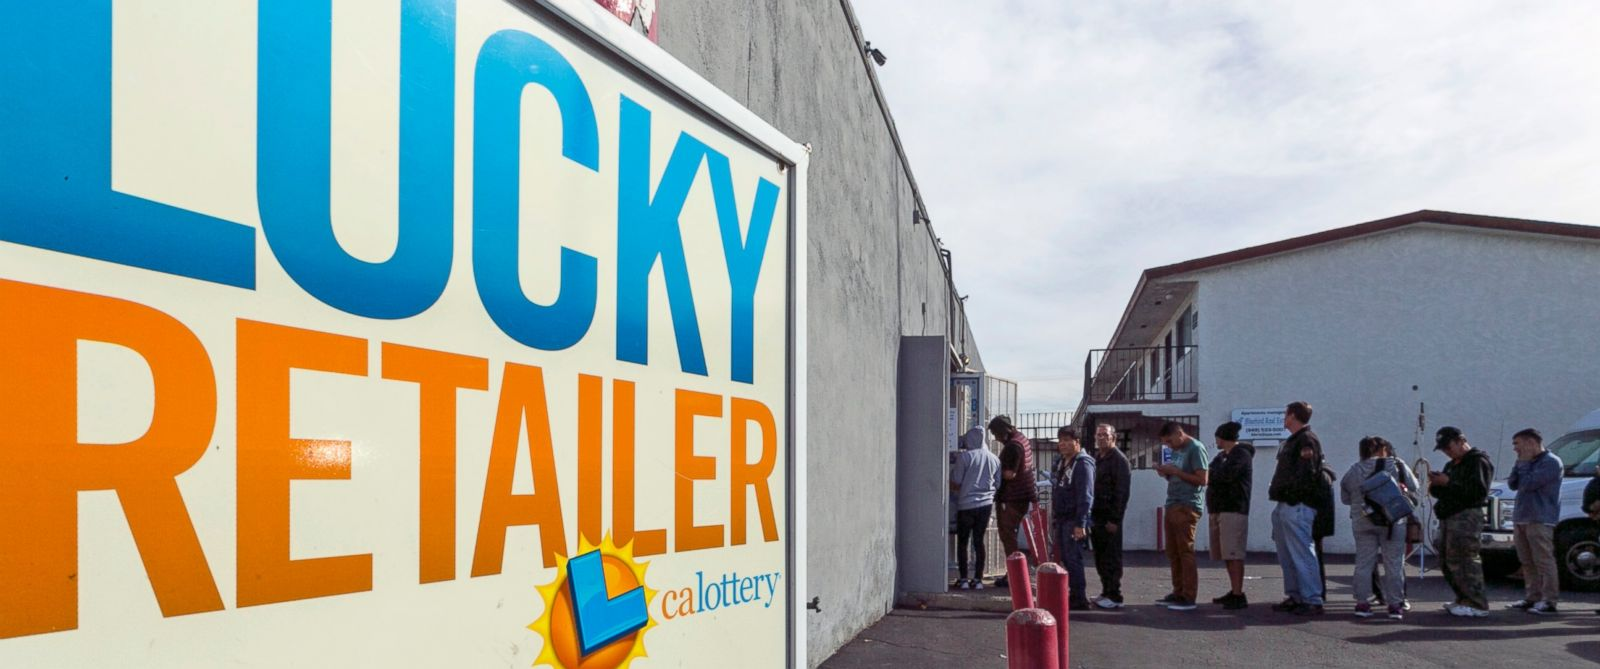 PHOTO: A California Lucky Retailer sign is posted outside the Blue Bird Liquor store as customers wait in line to buy lottery tickets in Hawthorne, Calif. With $63 million on the line, the mystery remains: Where? is the winning California Lottery ticket?